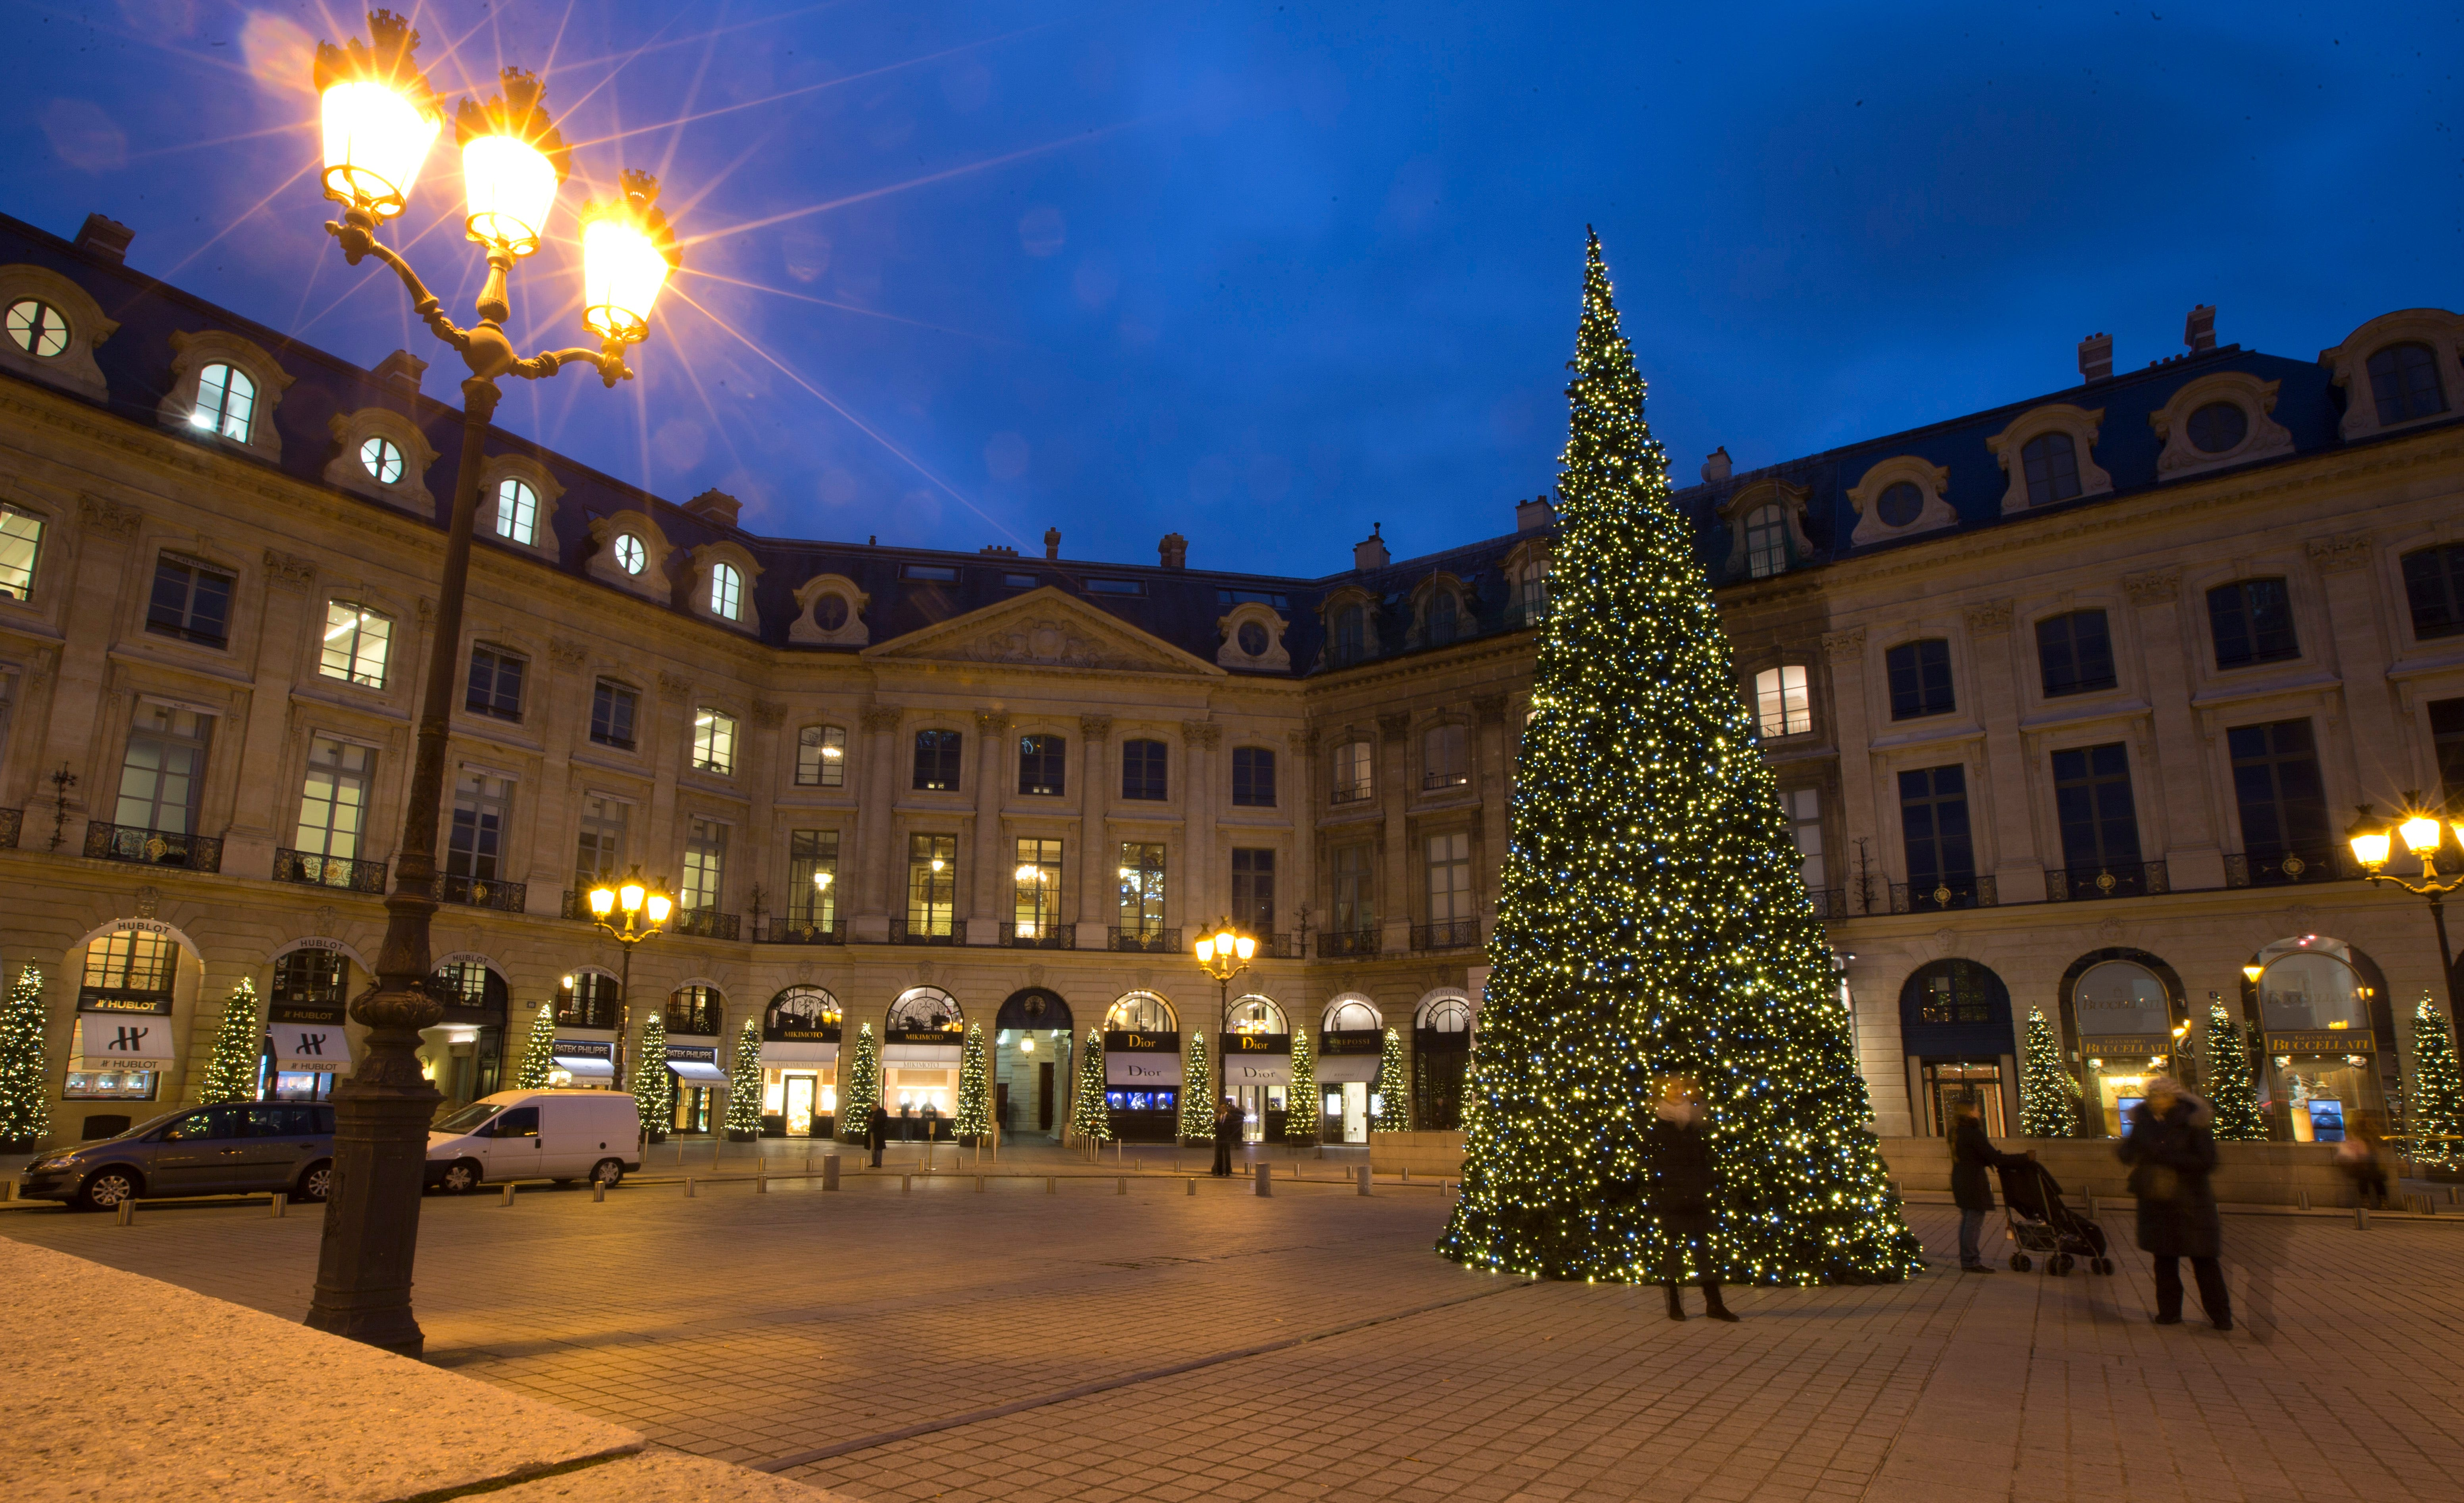 http://www.usatoday.com/picture-gallery/travel/holiday-lights/2014/12 ...